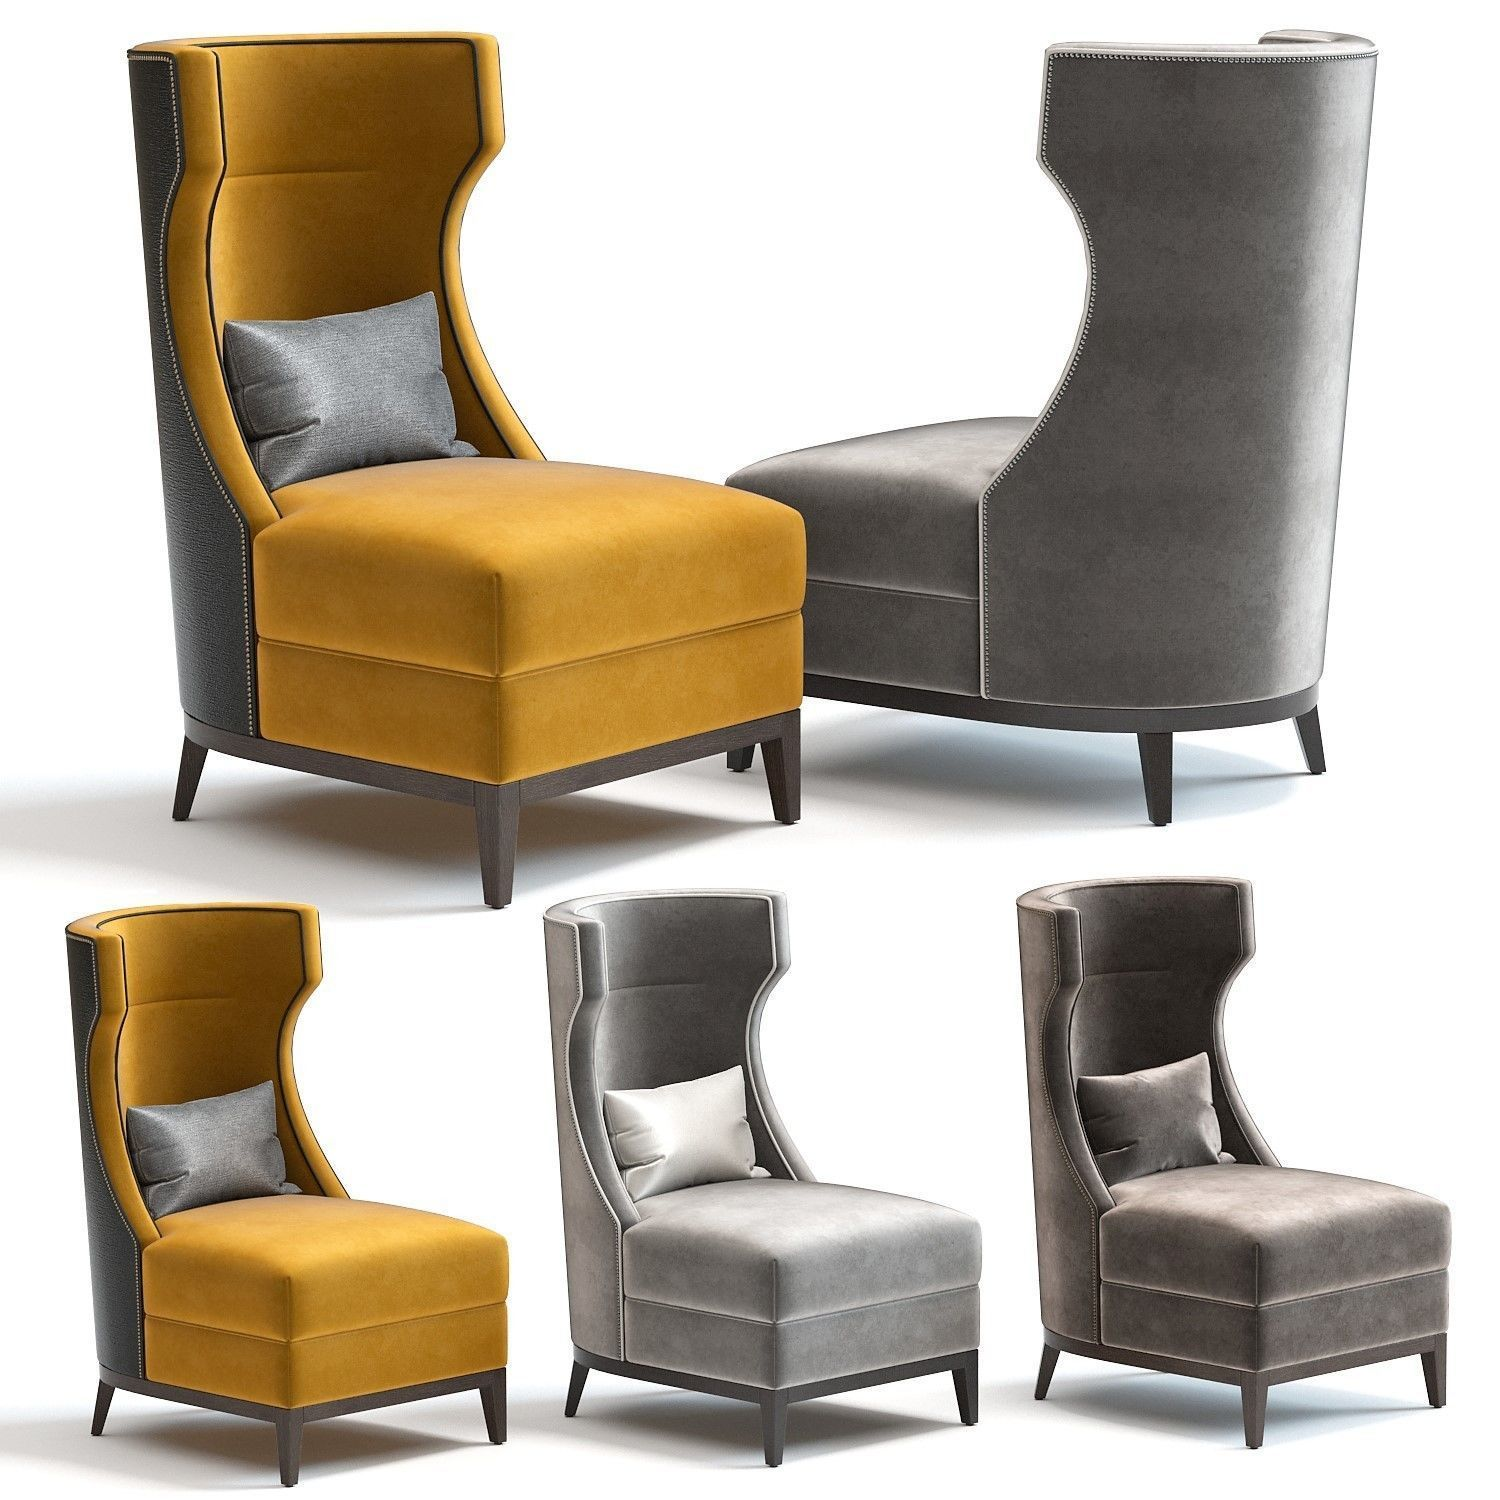 The Sofa and Chair Co - Parker Armchair